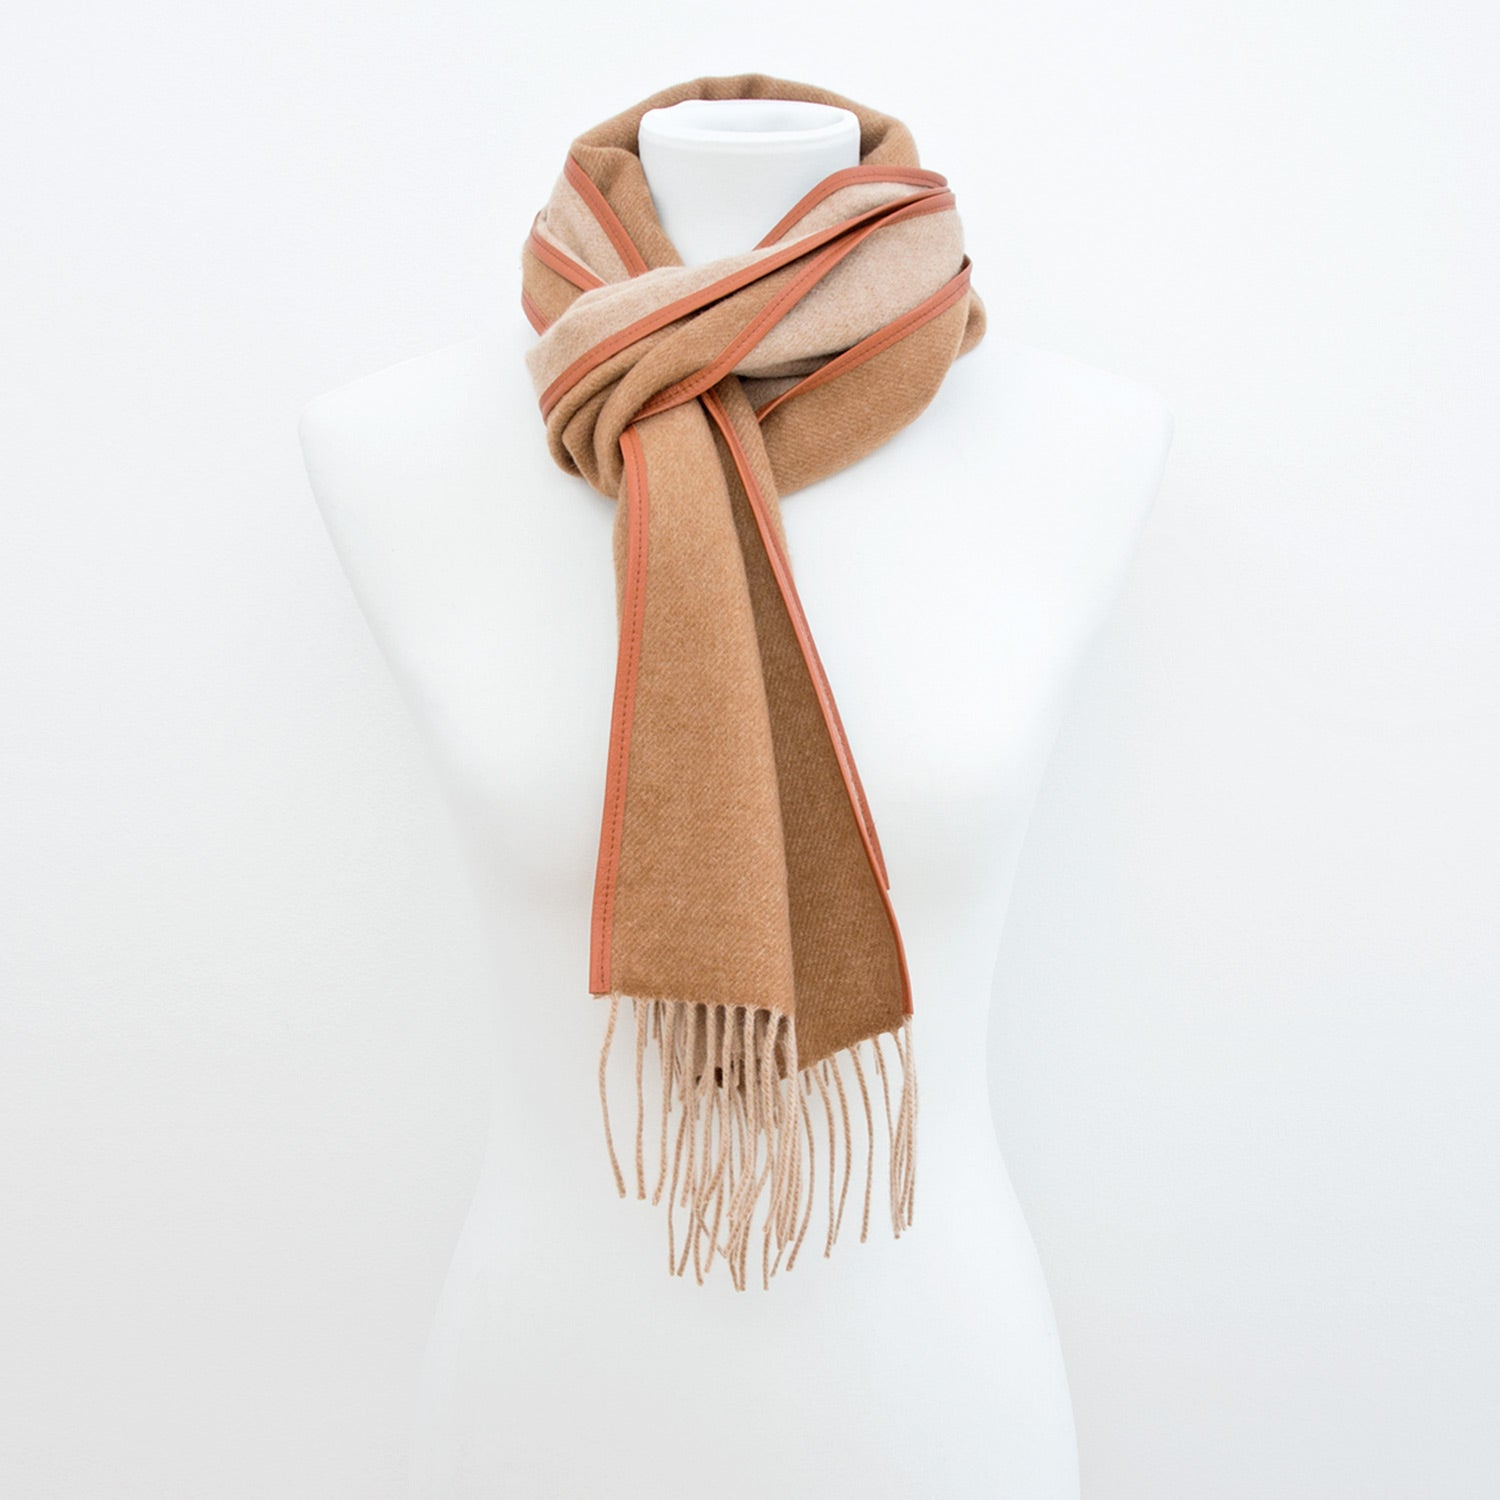 Doria & Dojola Cortina Vicuña-Cashmere Scarf. 80% Cashmere 20% Vicuña with genuine Leather Ribbon 30 x 180 cm. Made in Italy.